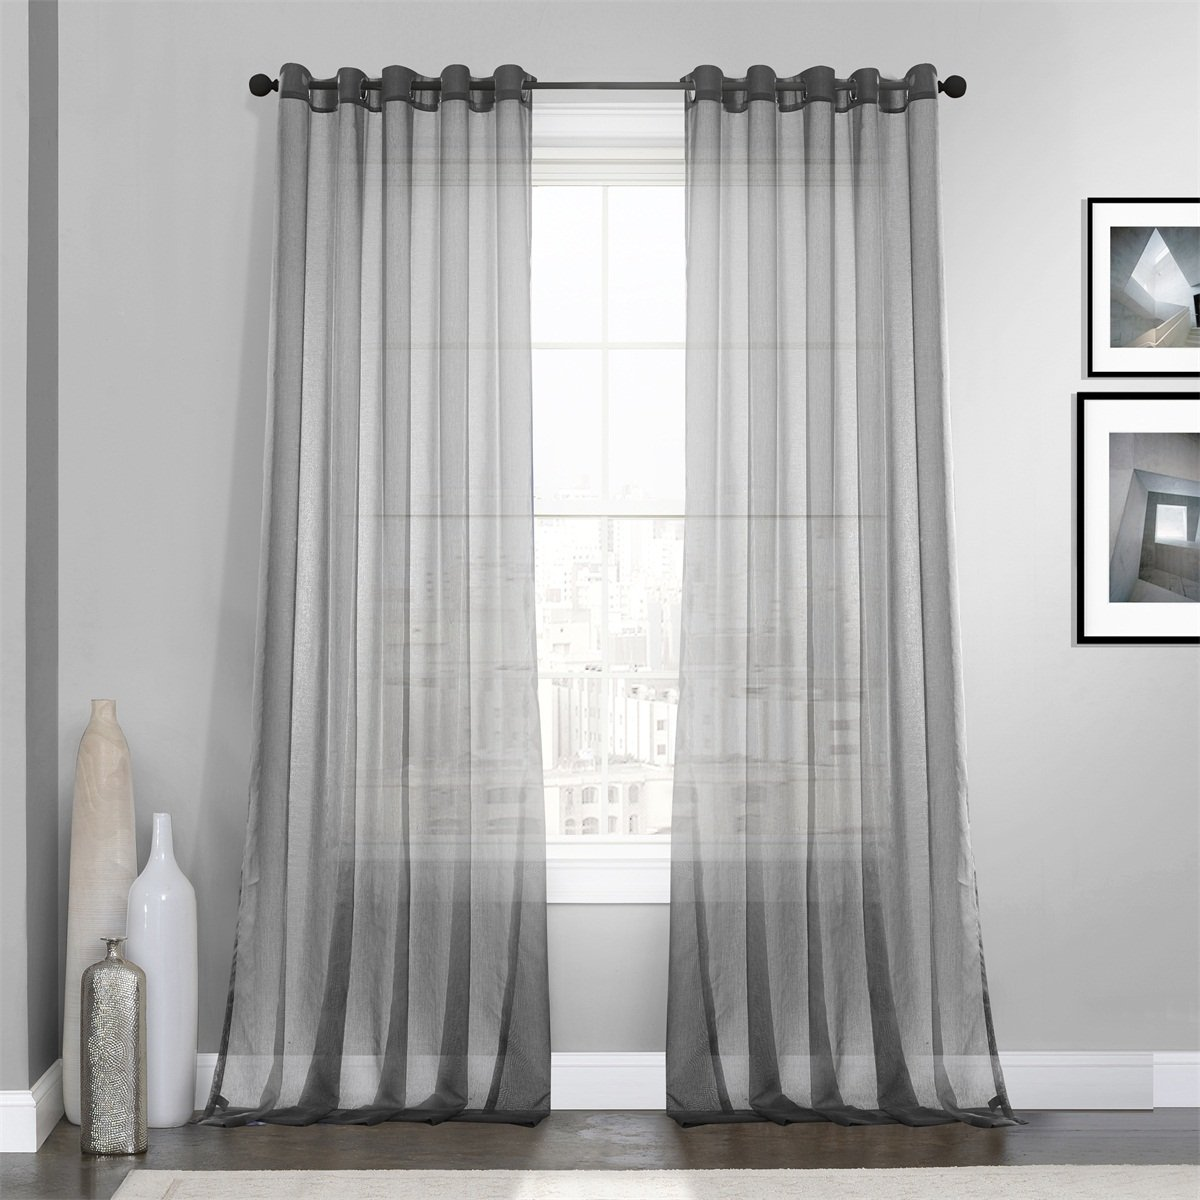 Dreaming Casa Grey Solid Sheer Curtains Voile Window Treatment/Draperies 52'' W x 96'' L (2 Panels)/Grommet Top